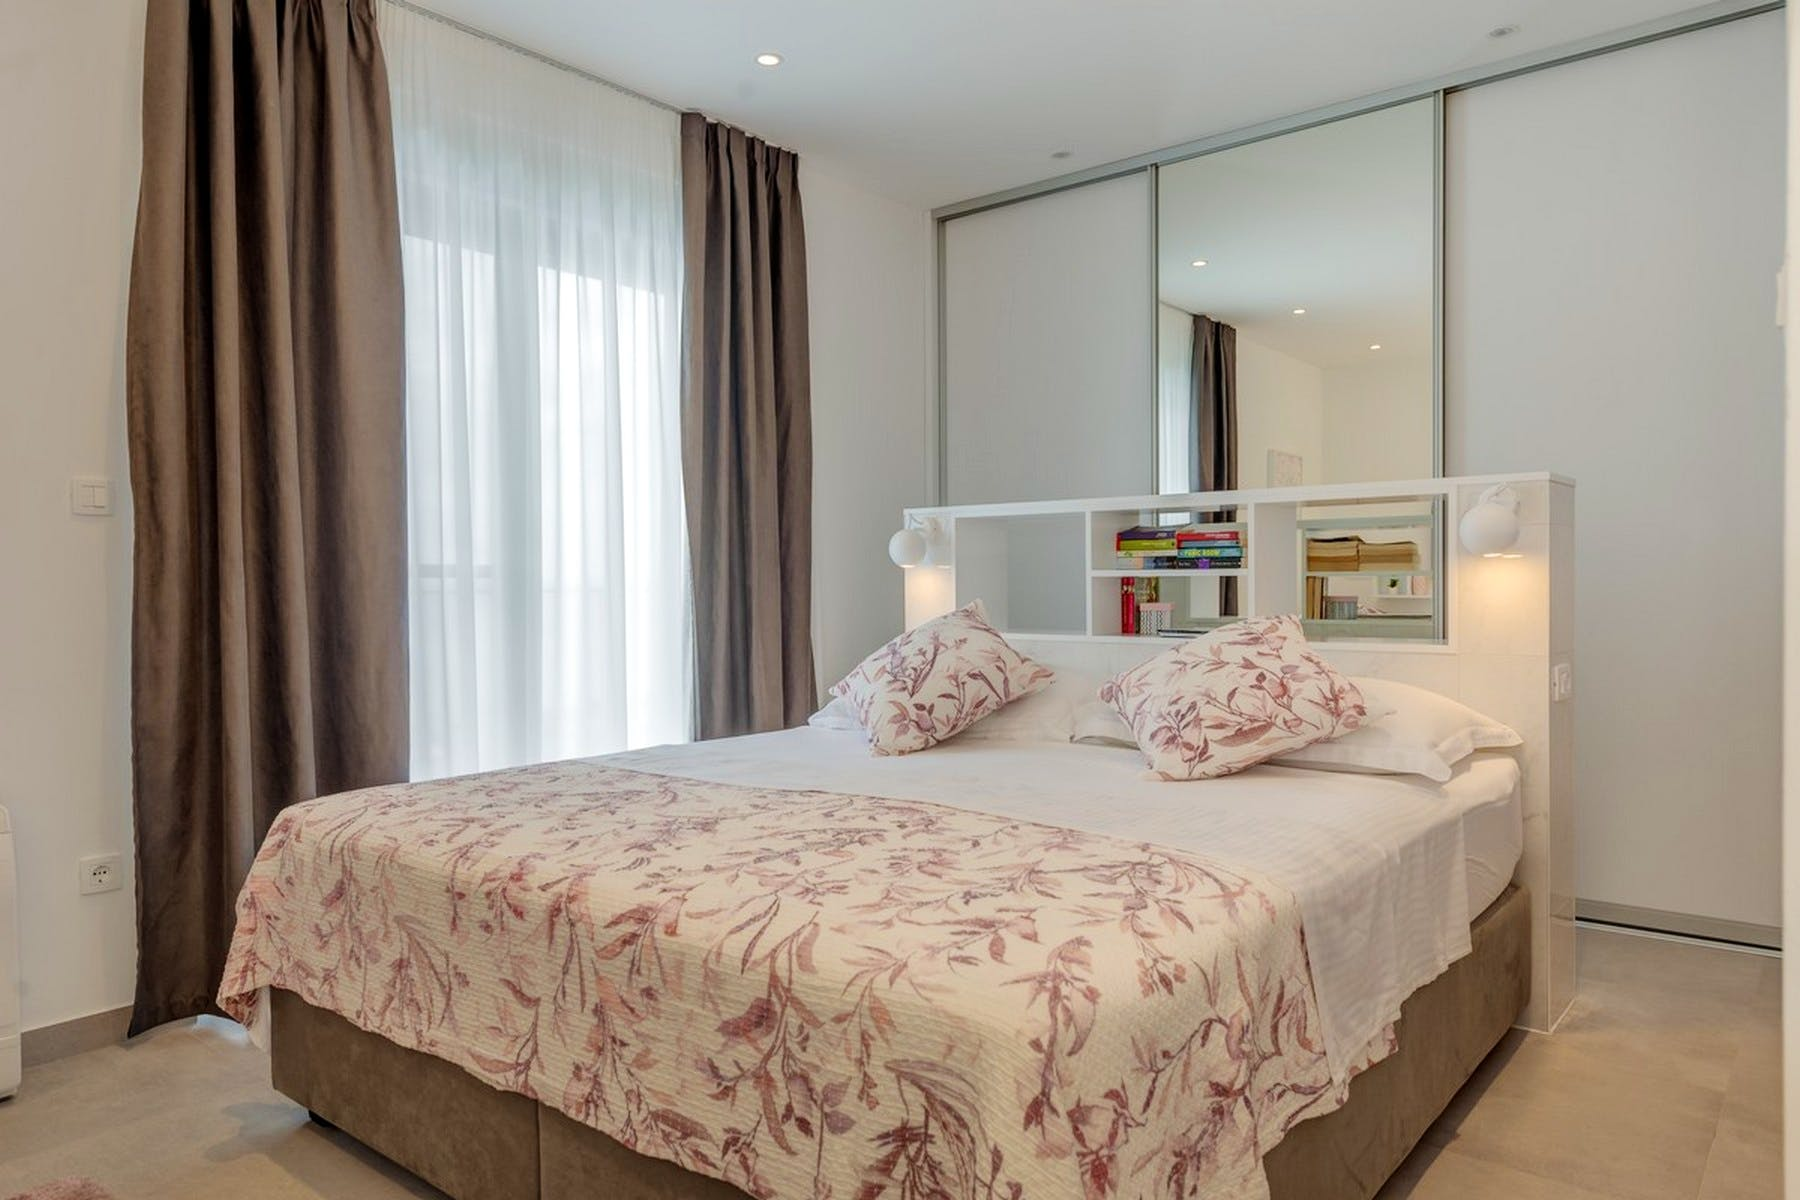 Double bedroom with large mirrors